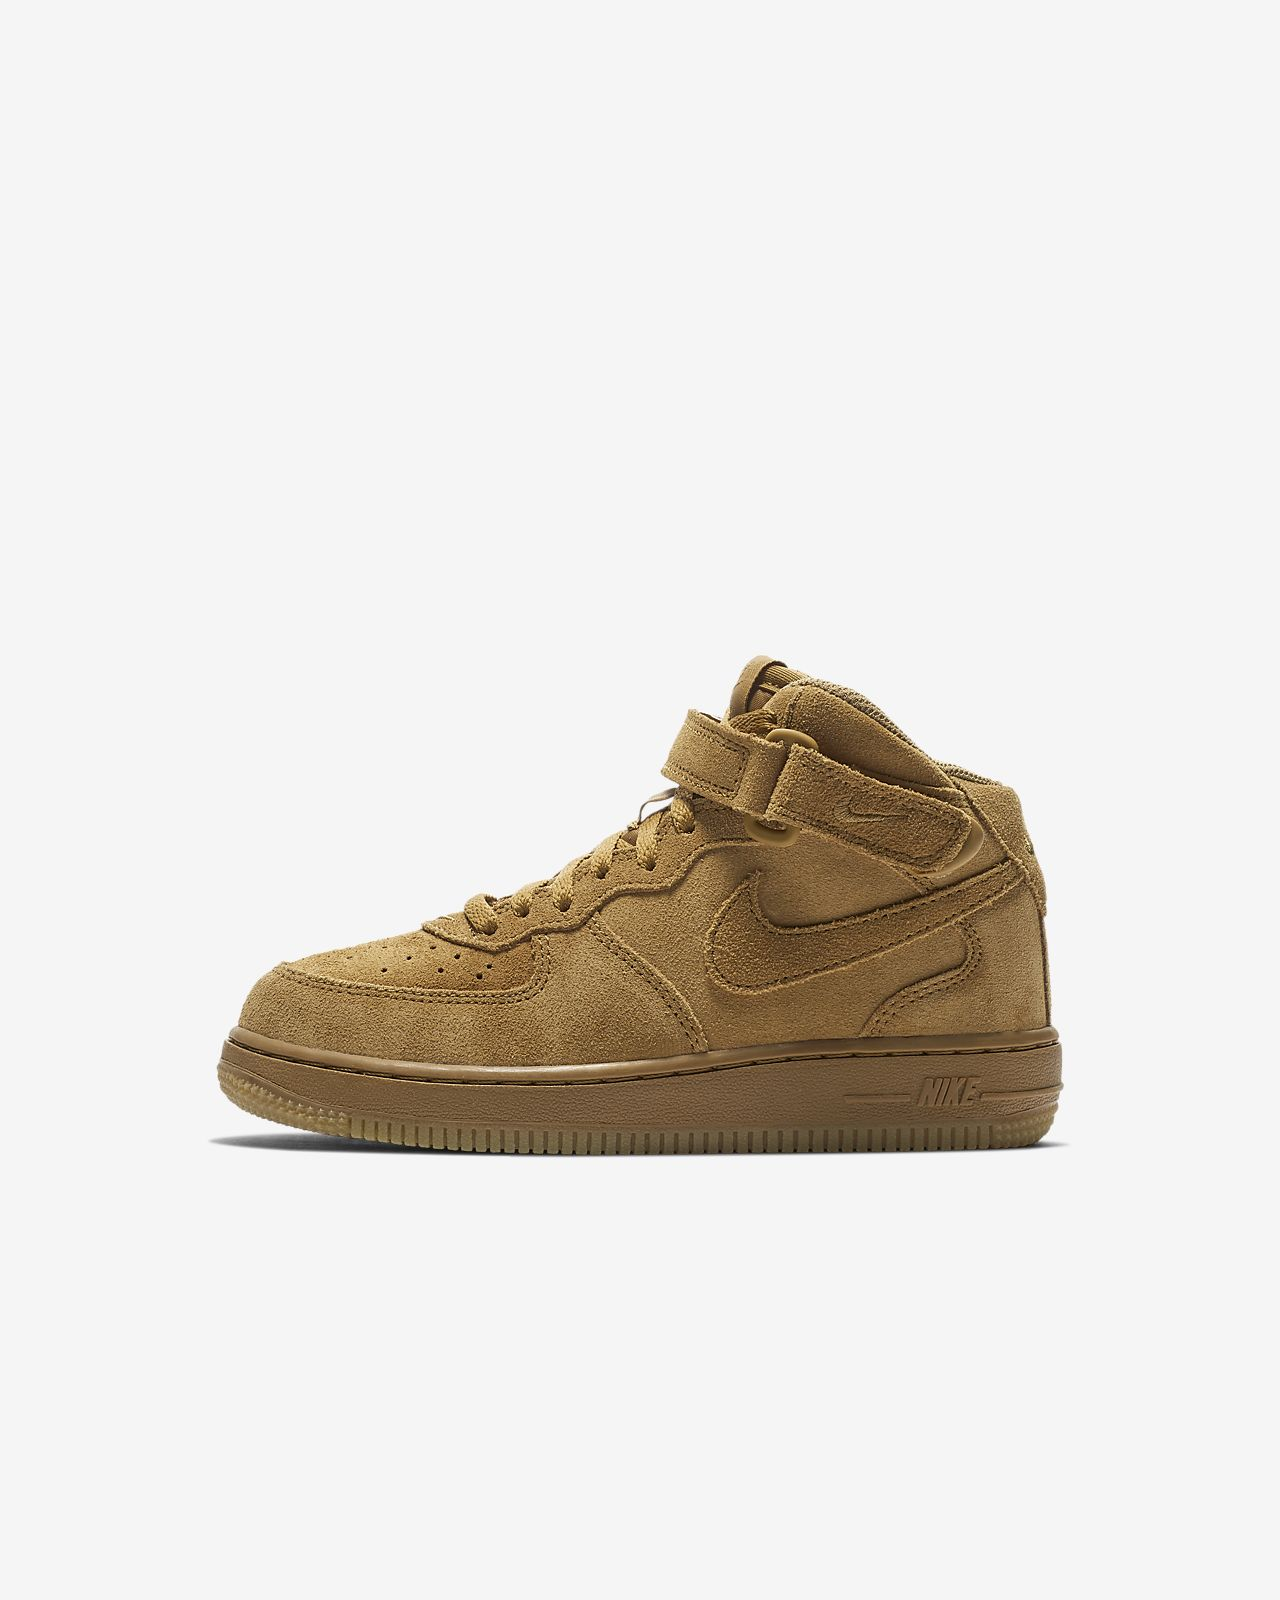 promo code 8cfc1 a1f63 ... Nike Air Force 1 Mid LV8 Younger Kids  Shoe